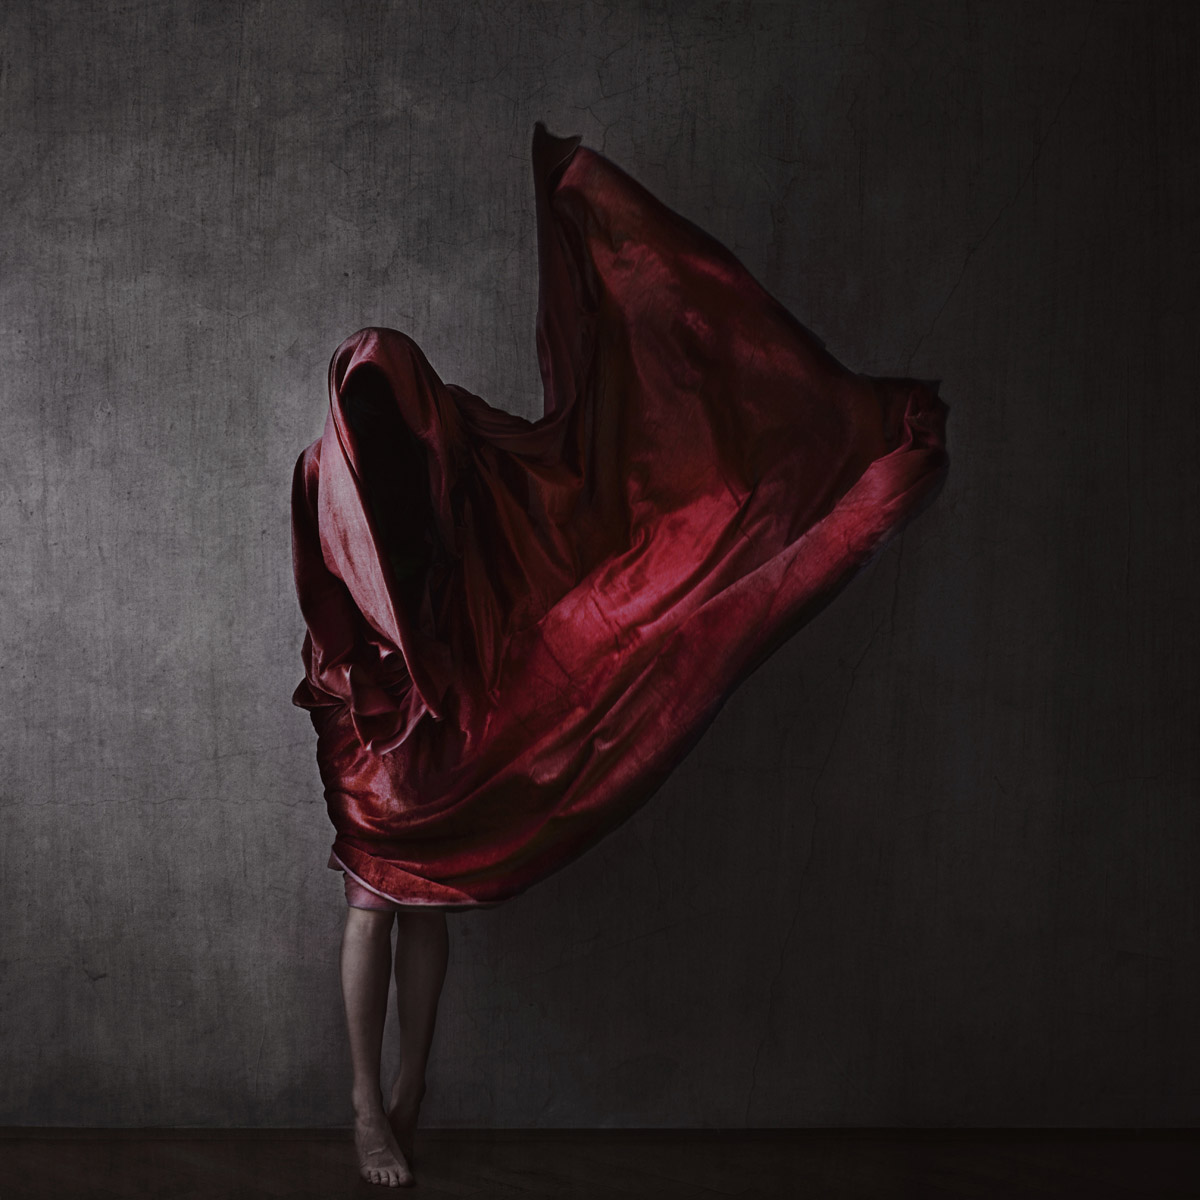 The Dark One | Anja Matko